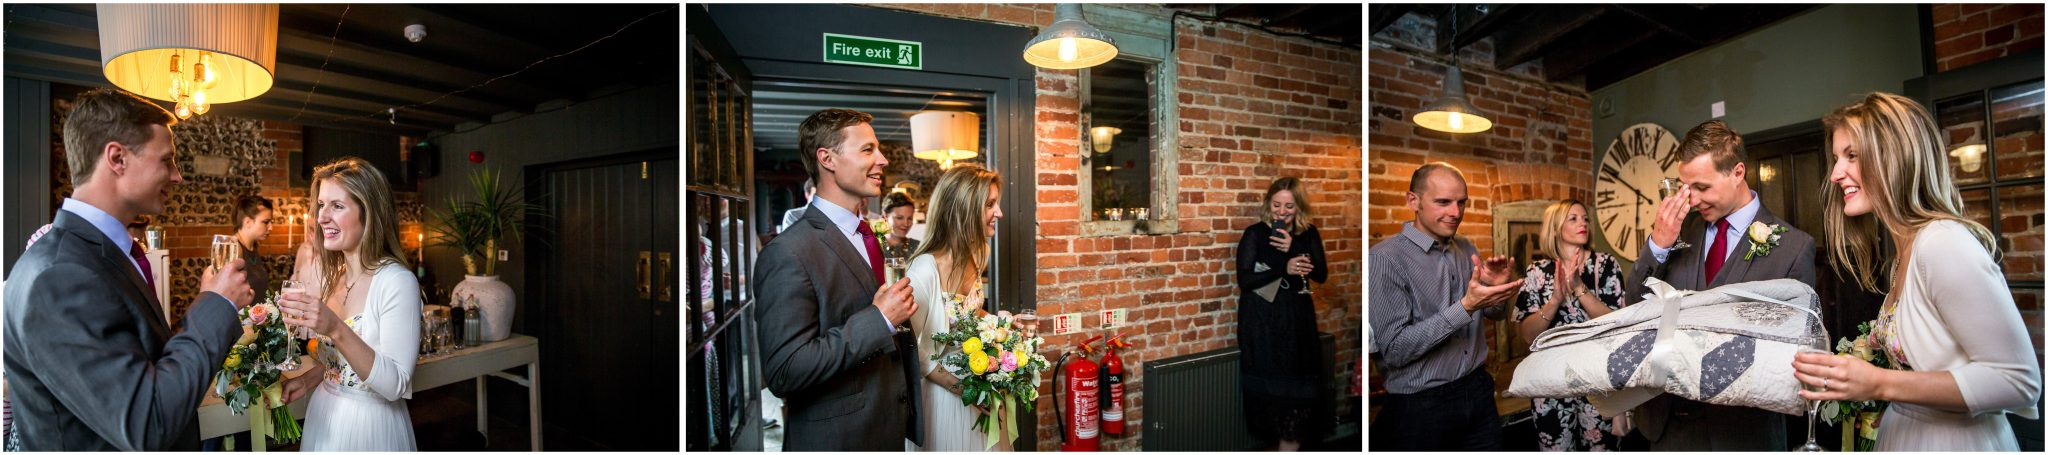 Bride and groom arraive at reception venue